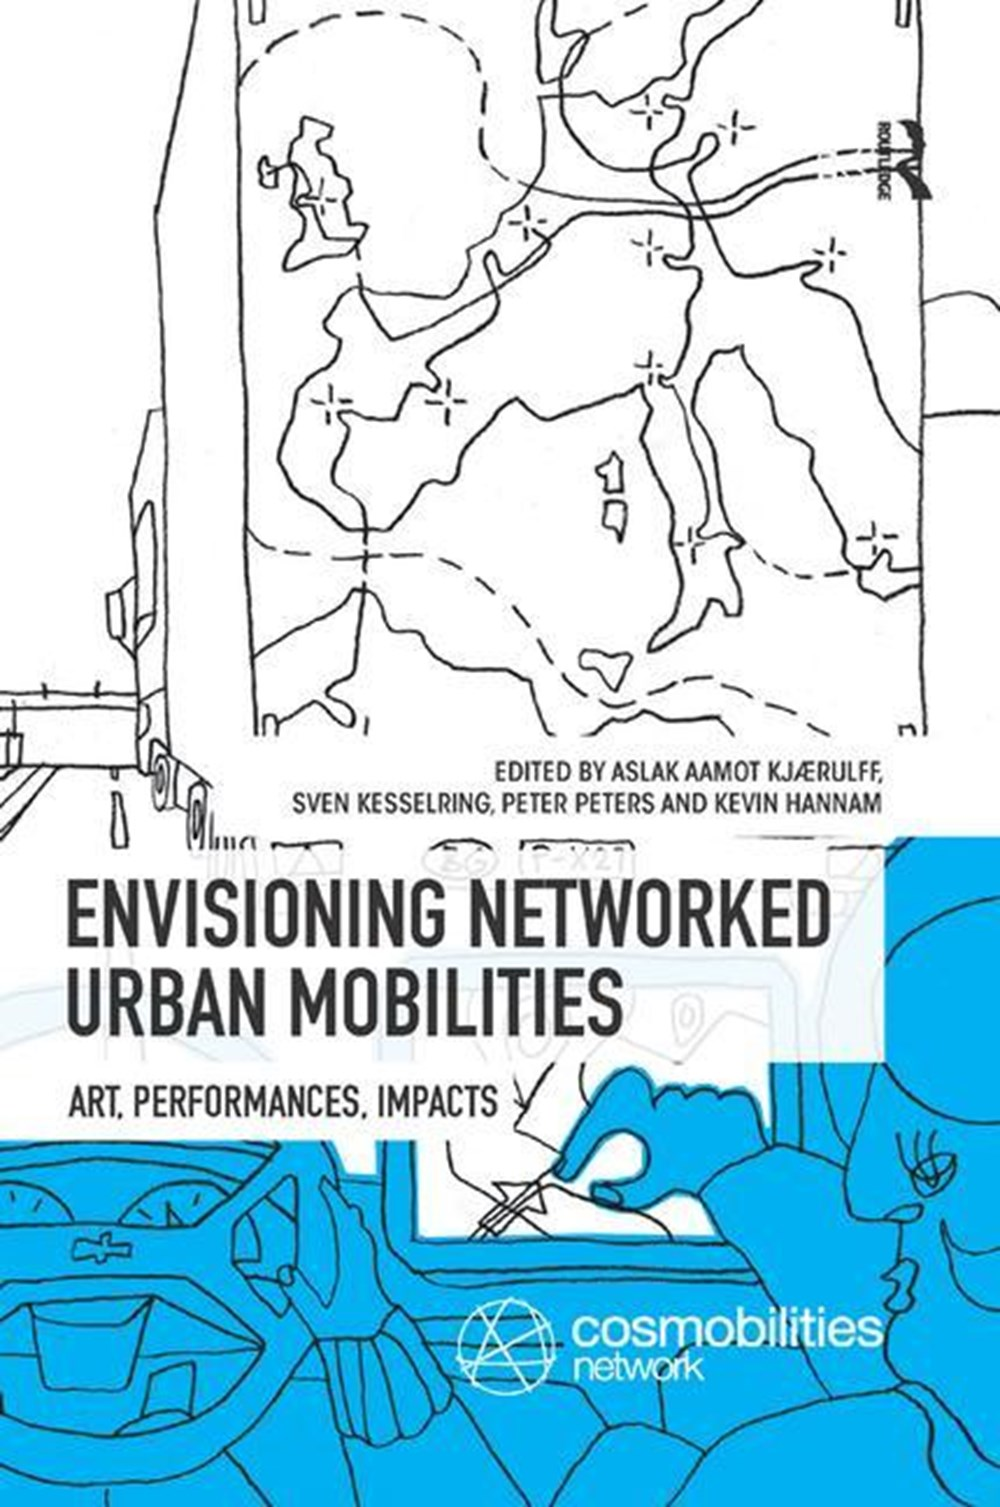 Envisioning Networked Urban Mobilities Art, Performances, Impacts